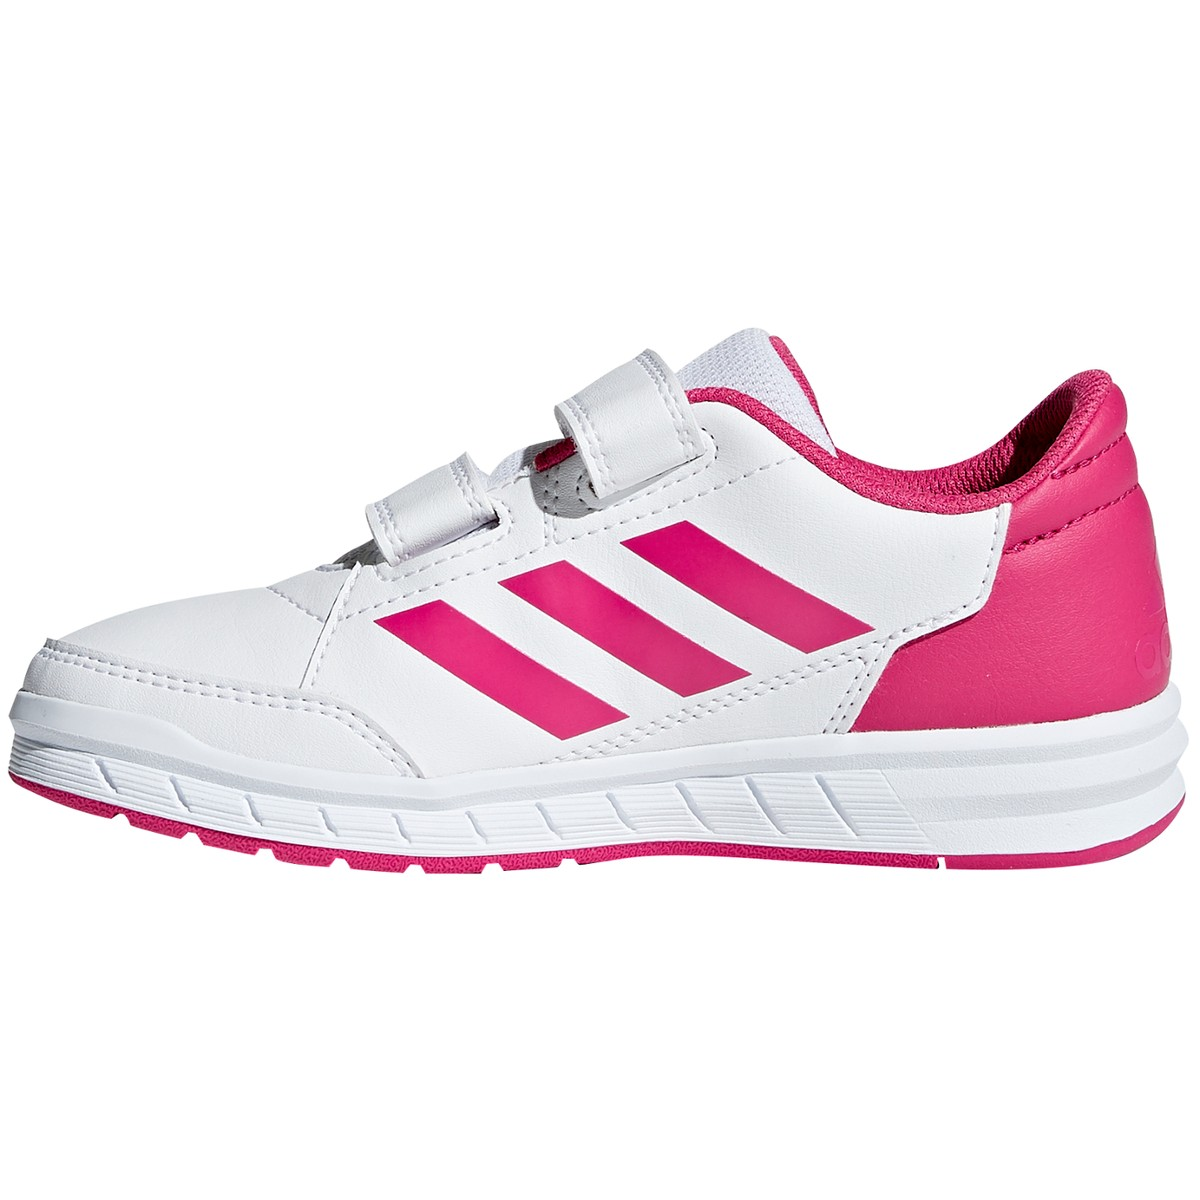 free delivery presenting united states CHAUSSURES ADIDAS JUNIOR ALTASPORT CF - ADIDAS - Junior ...